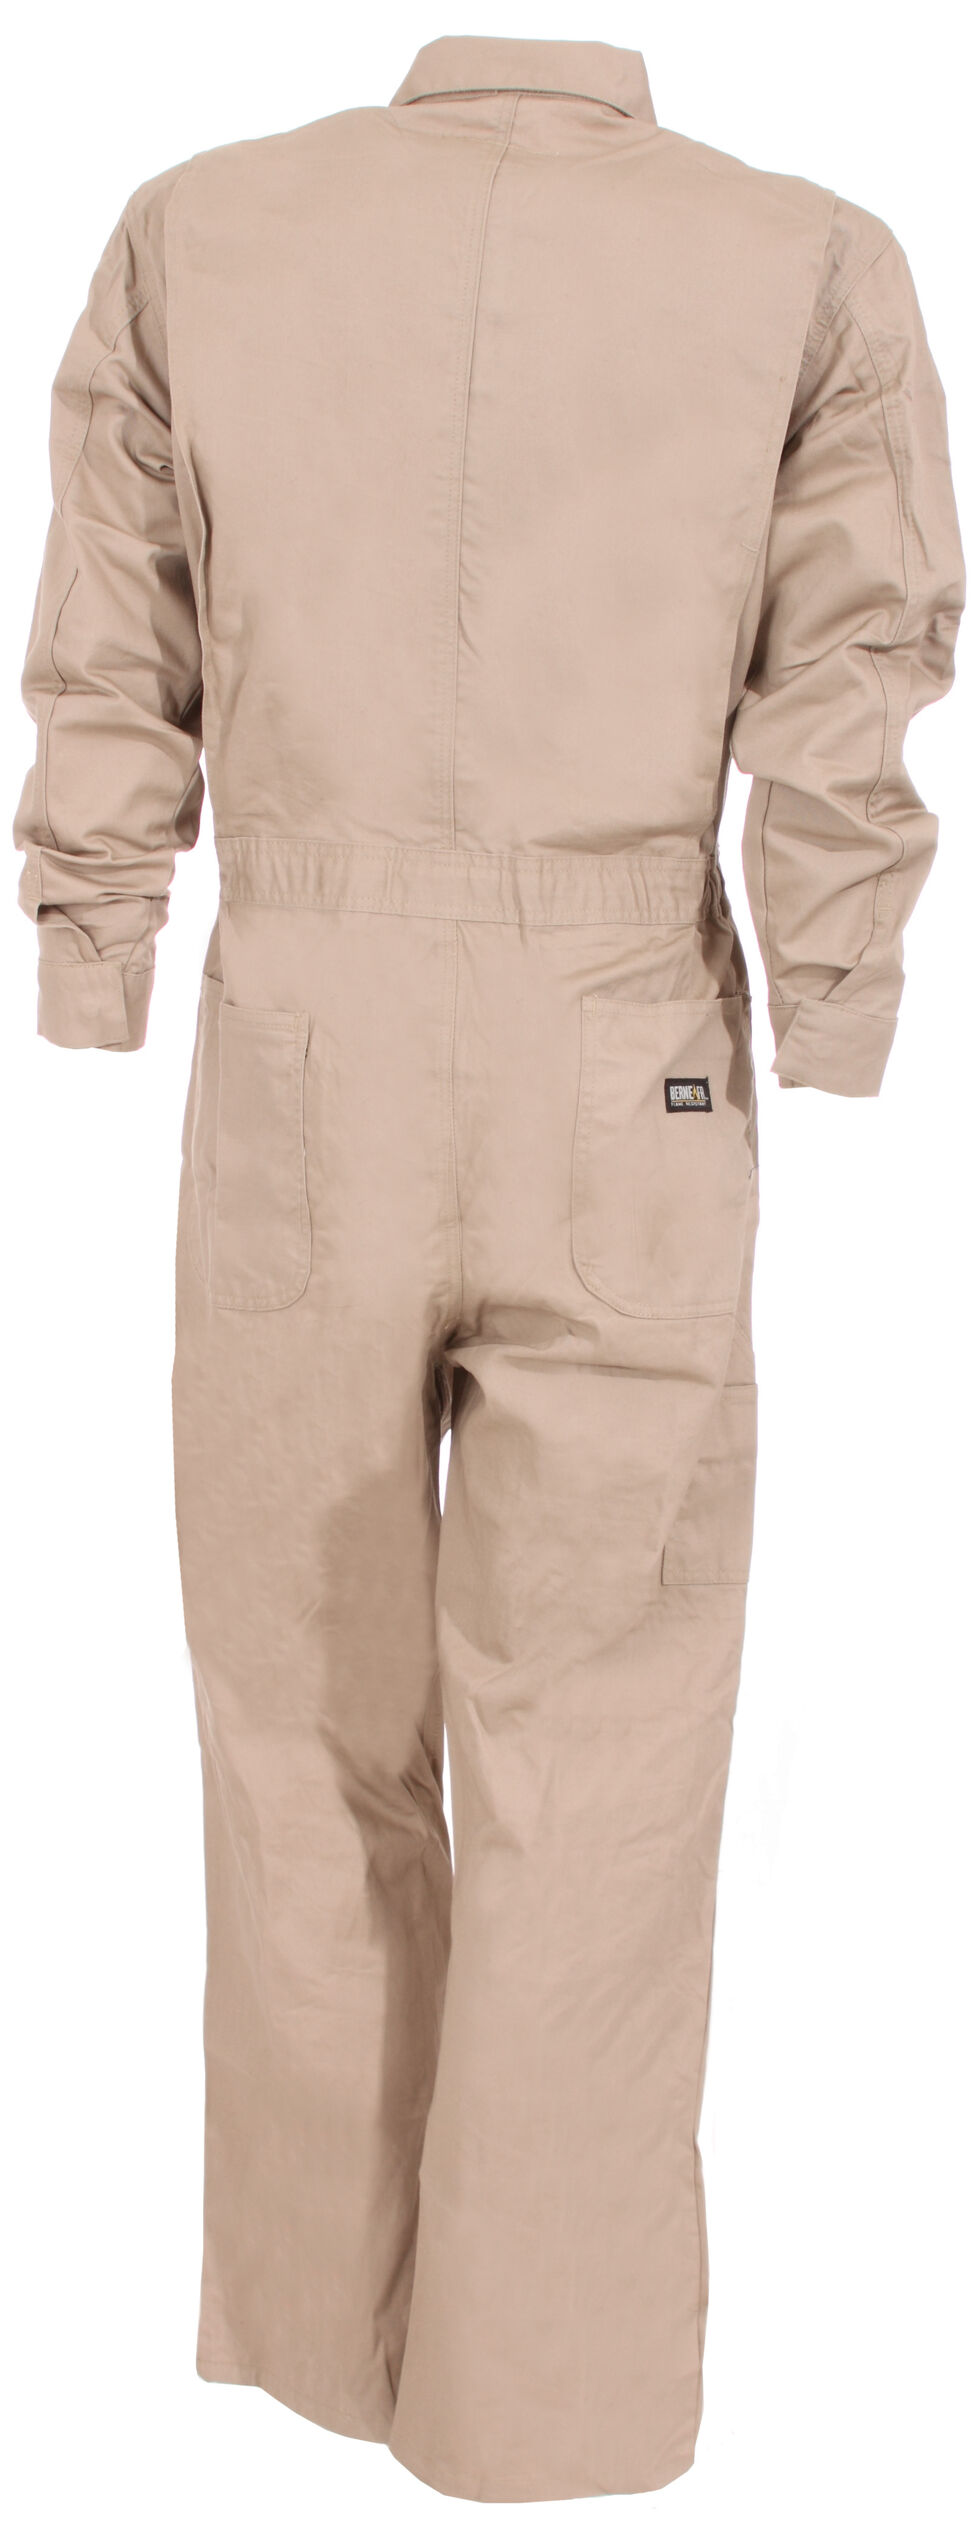 Berne Flame Resistant Deluxe Coveralls - Tall Sizes, Khaki, hi-res